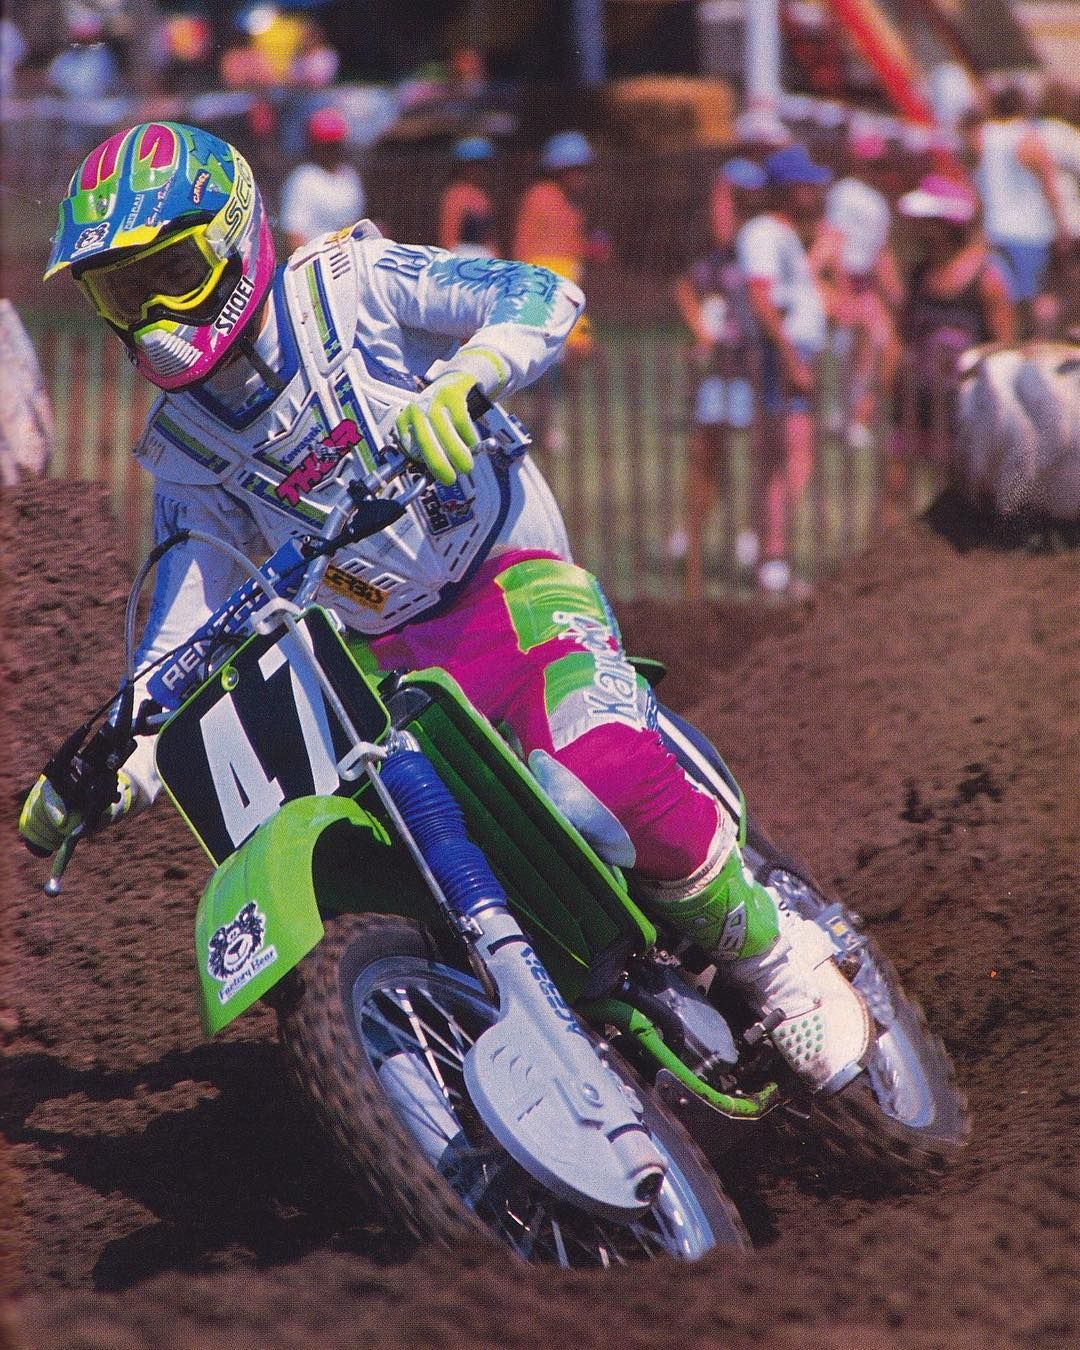 Mens haircuts for 40 year olds jeff emig going full viking at ponca city in   jeff emig